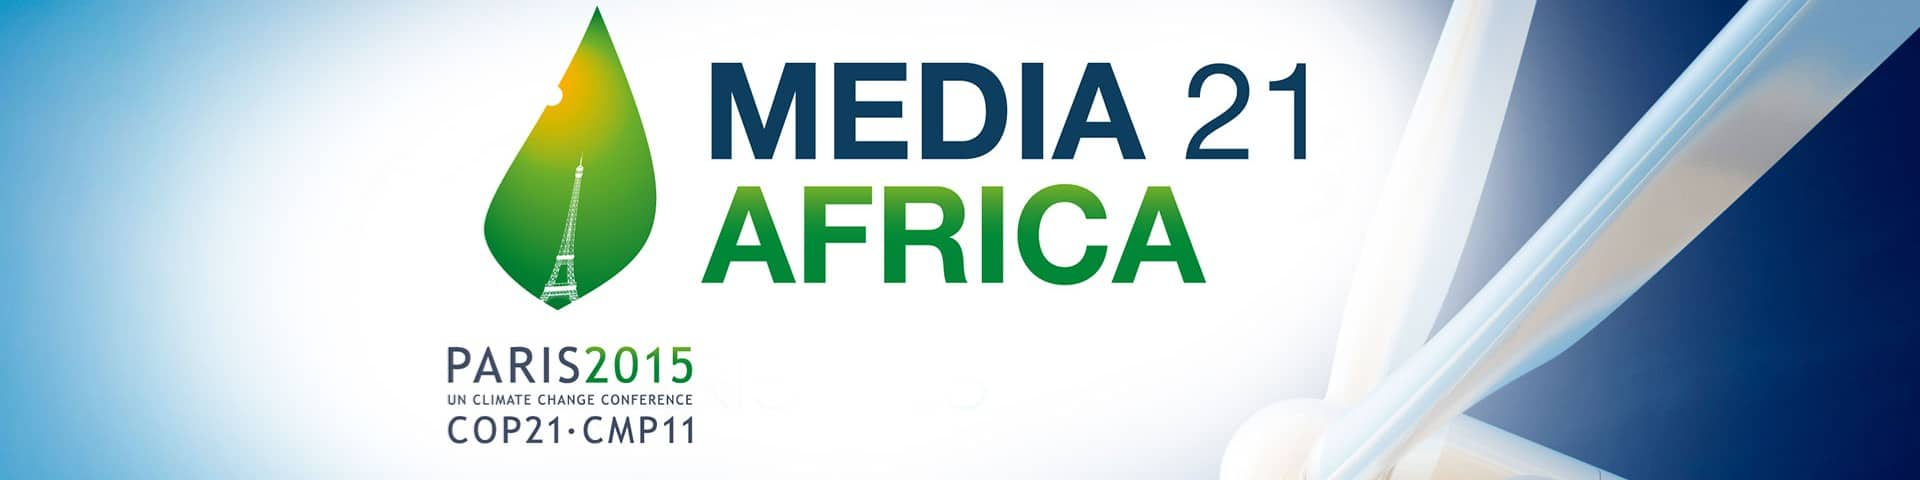 Media 21 Africa: Journalism and climate change